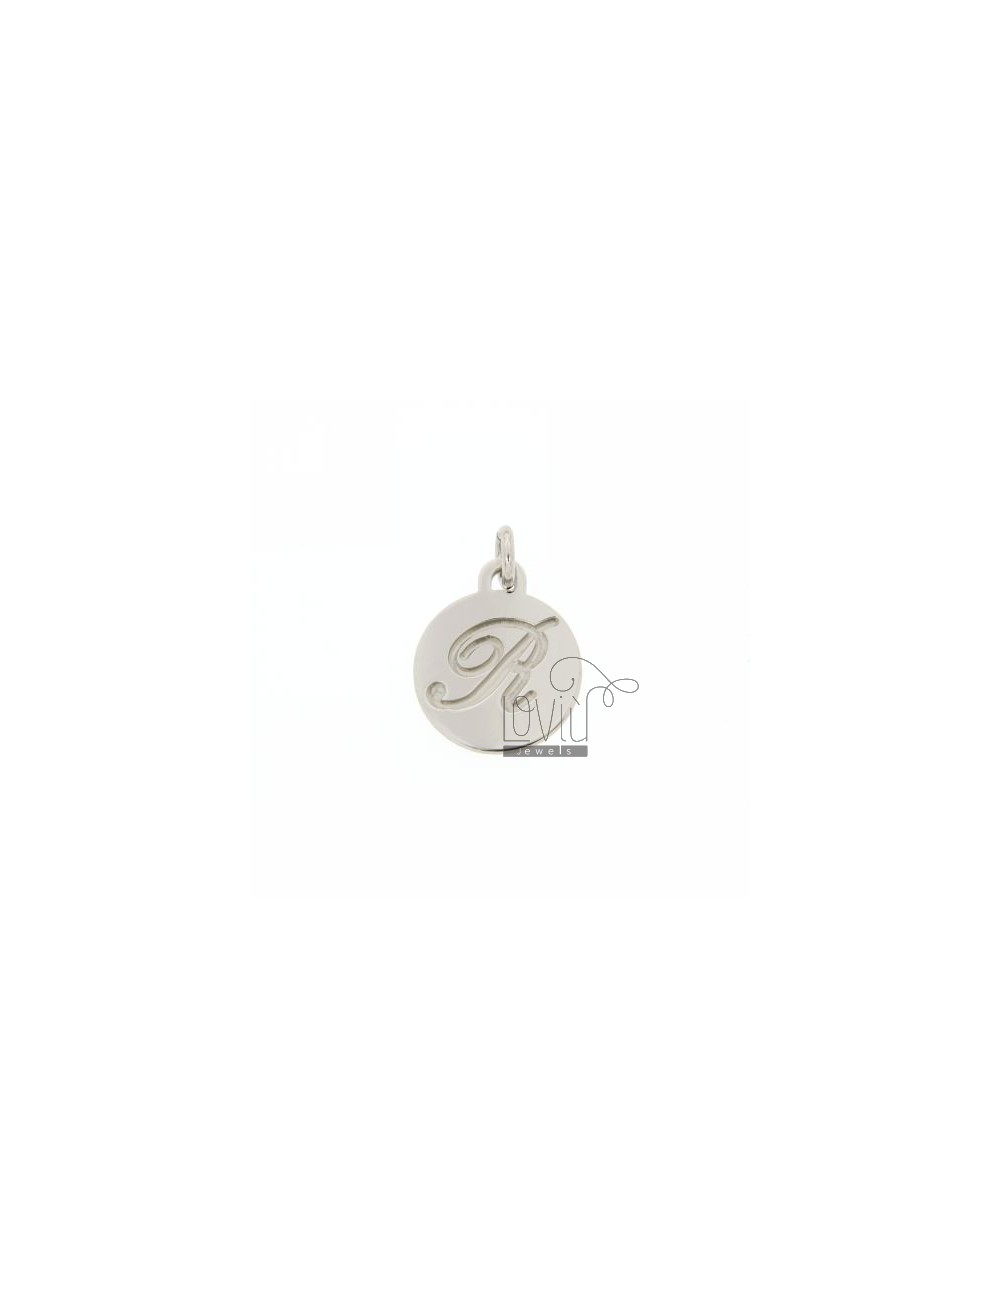 CHARM ROUND 15 MM WITH LETTER R ENGRAVED IN AG TIT 925 ‰ RHODIUM